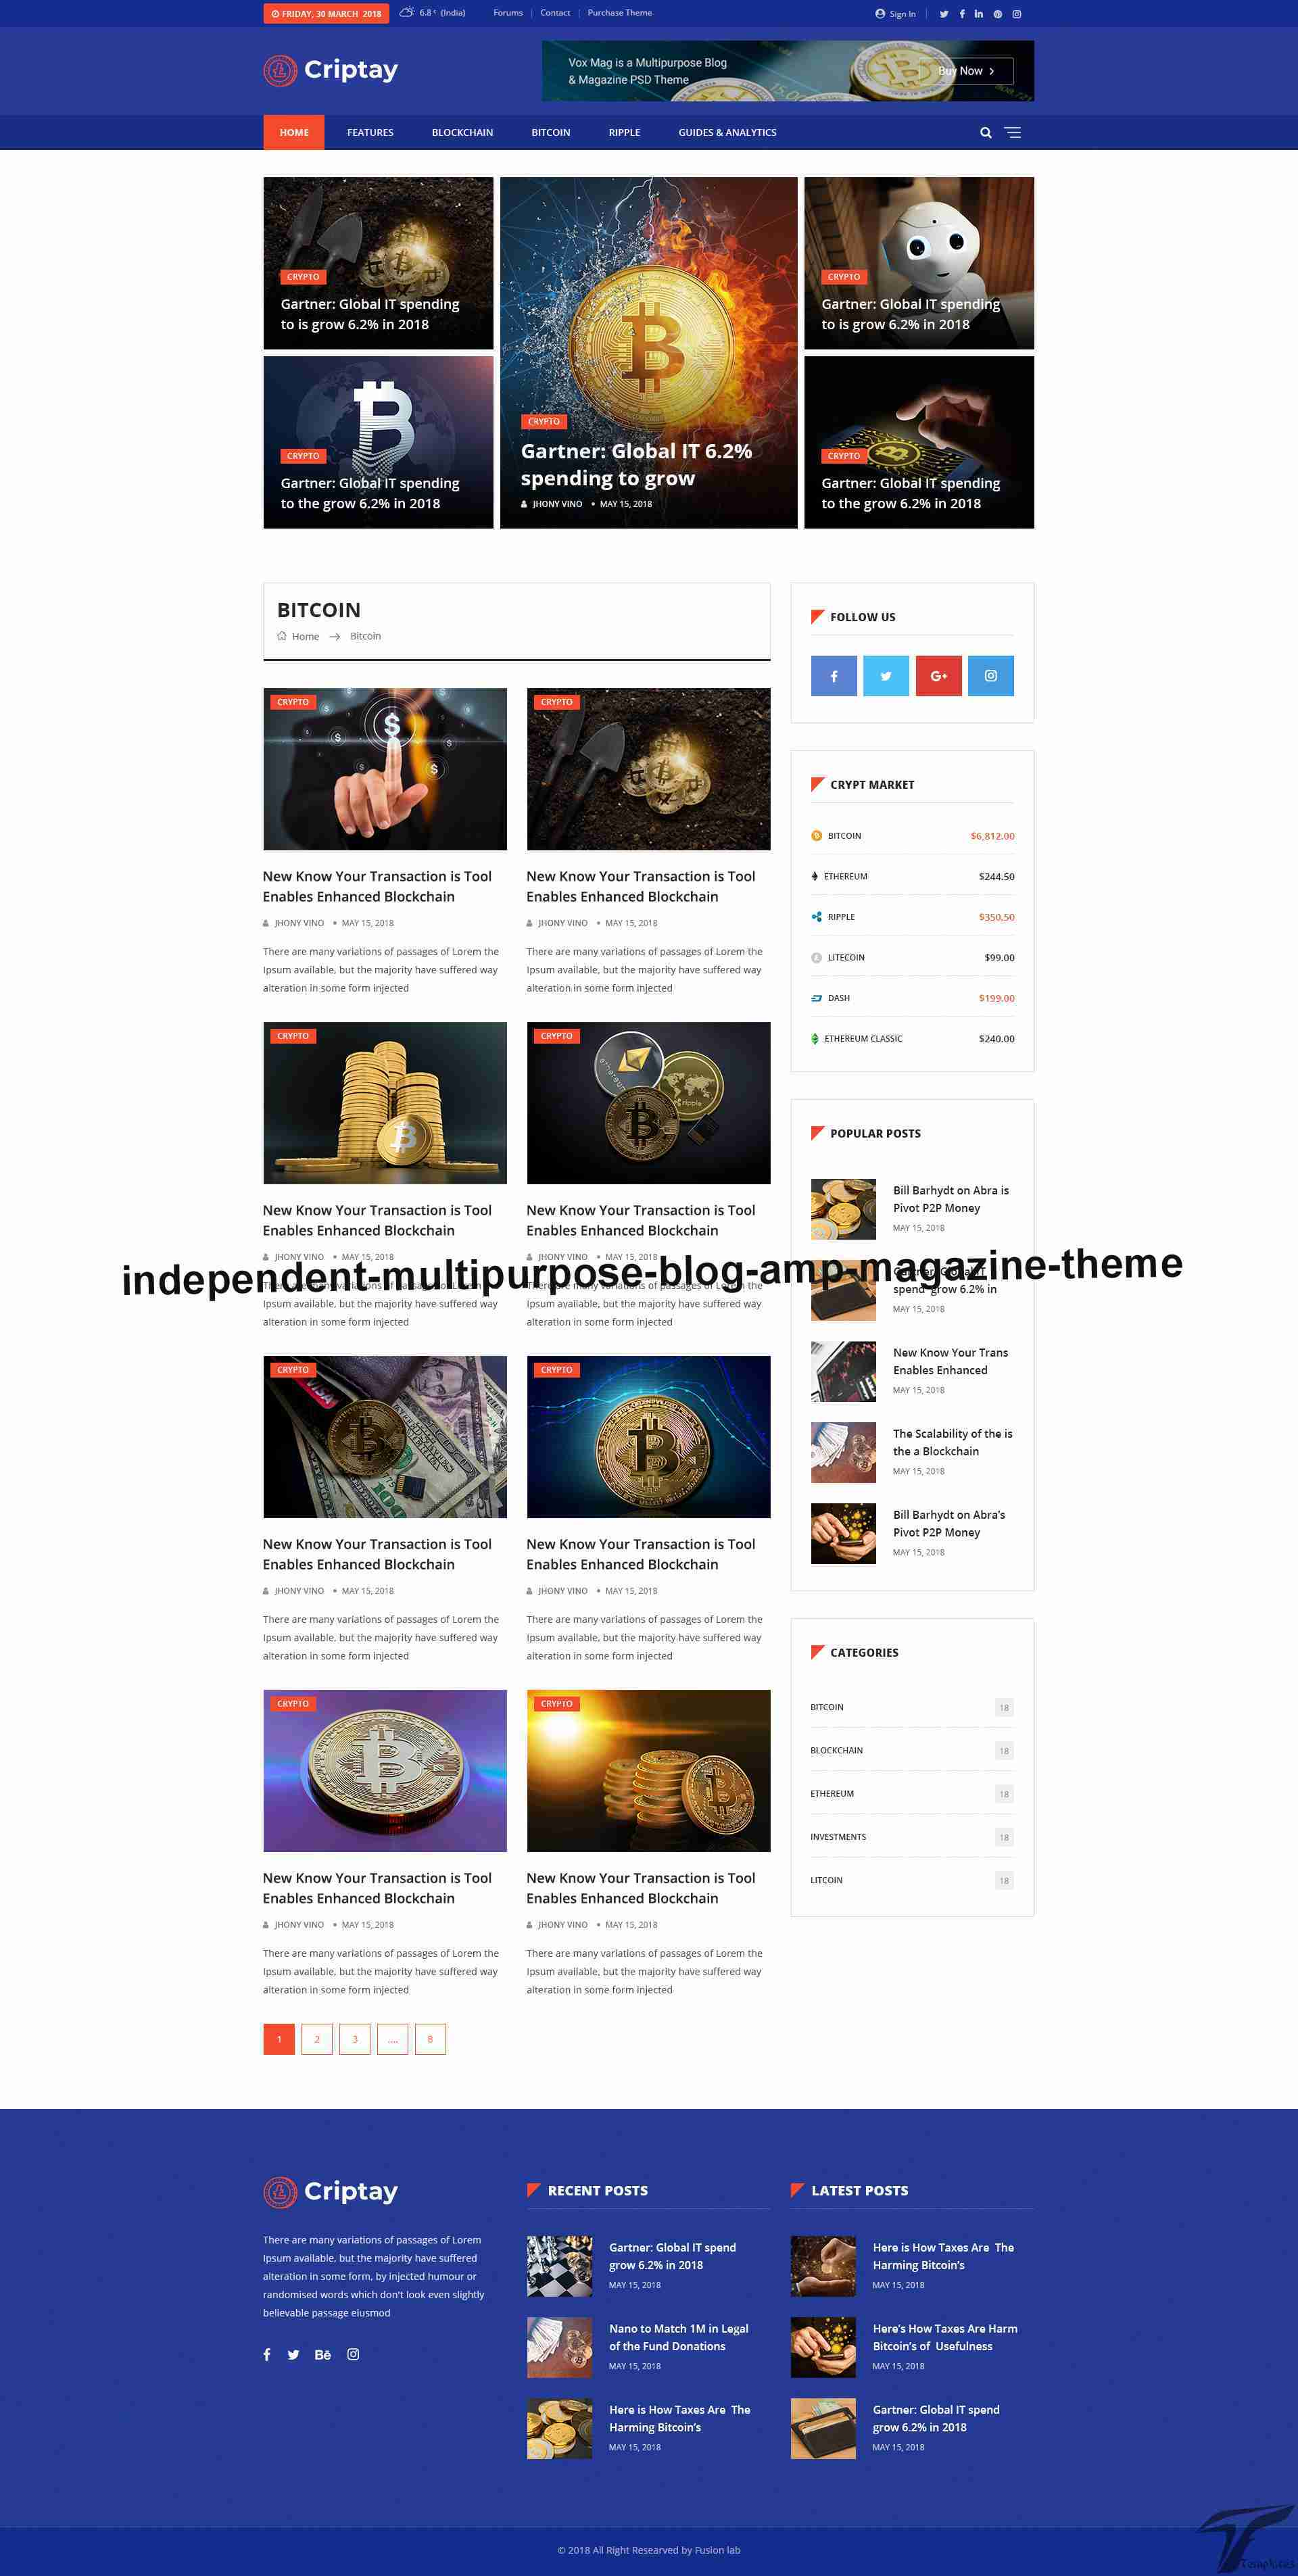 https://images.besthemes.com/images/h1_independent-multipurpose-blog-amp-magazine-theme21-_-249989416/Theme-s20s-Preview/20-Listing-s20s-Blog.jpg